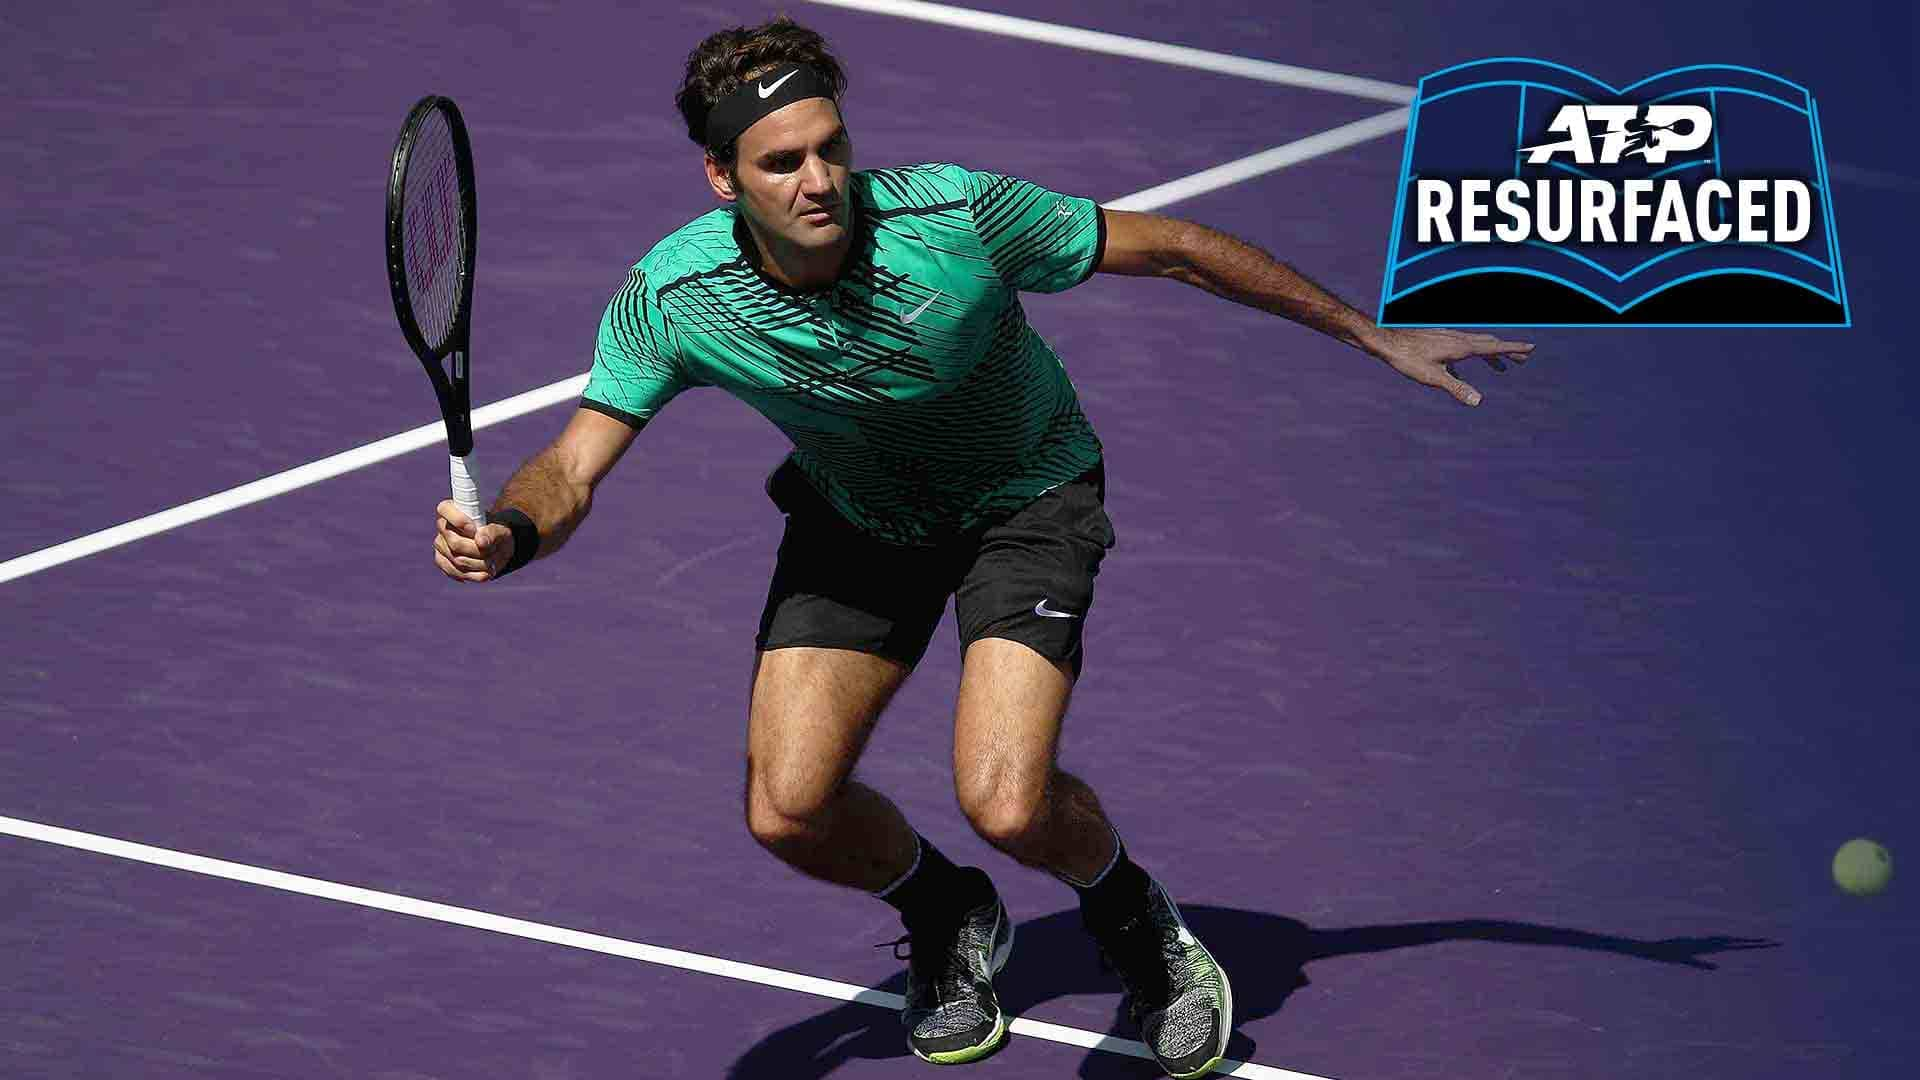 Roger Federer saves two match points against Tomas Berdych to reach the Miami Open presented by Itau semi-finals.